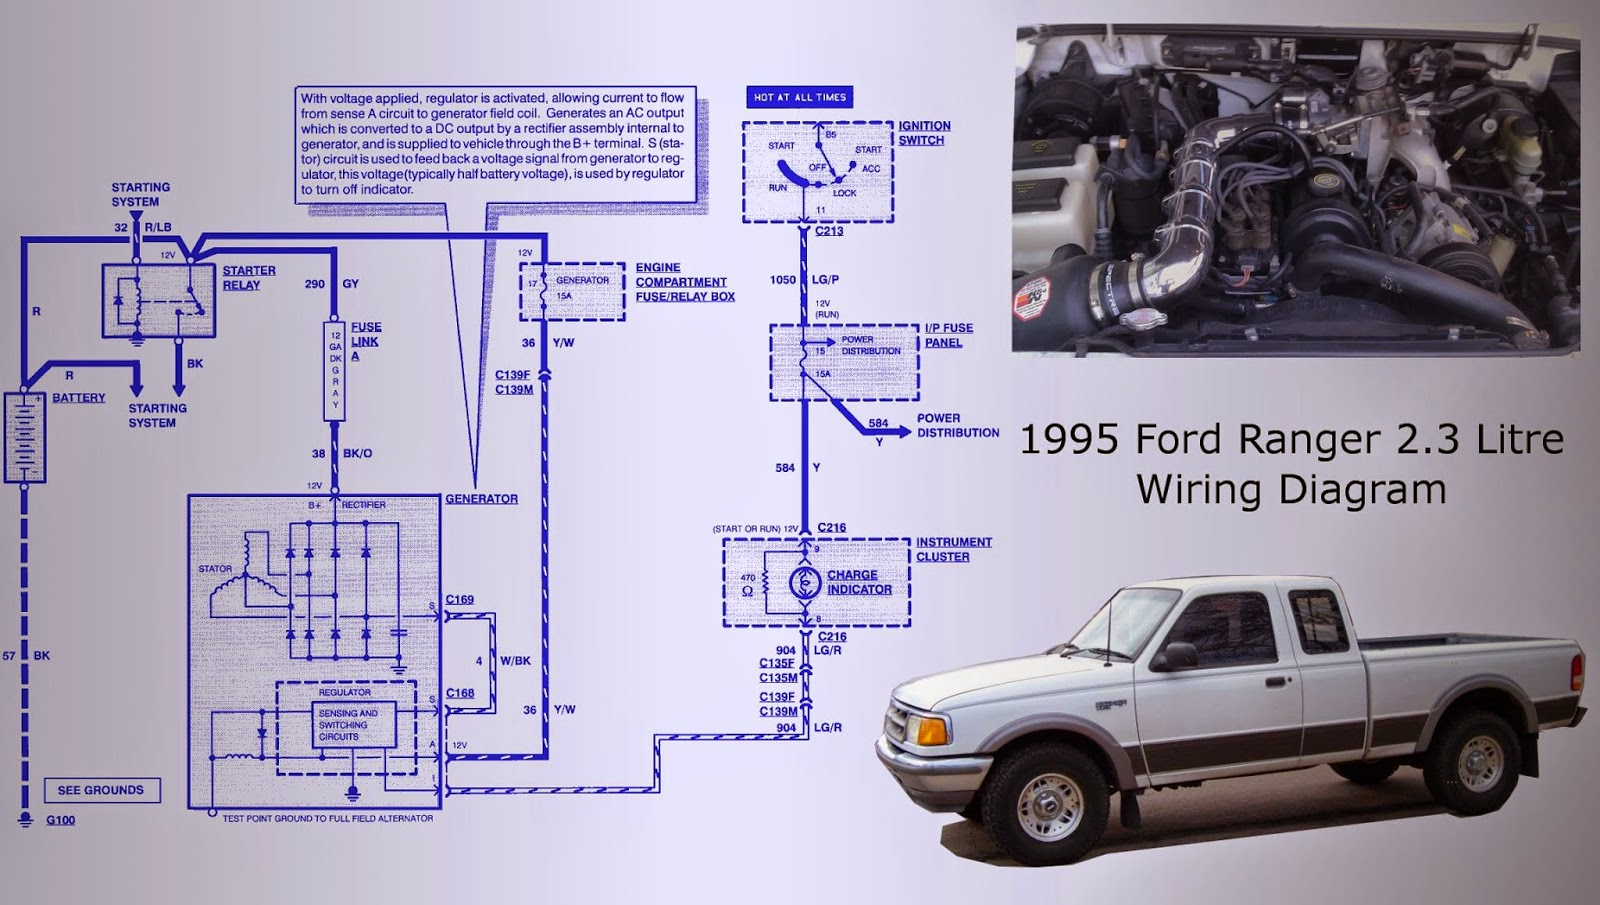 1995 Ford Ranger 23 Litre Wiring Diagram | Auto Wiring Diagrams